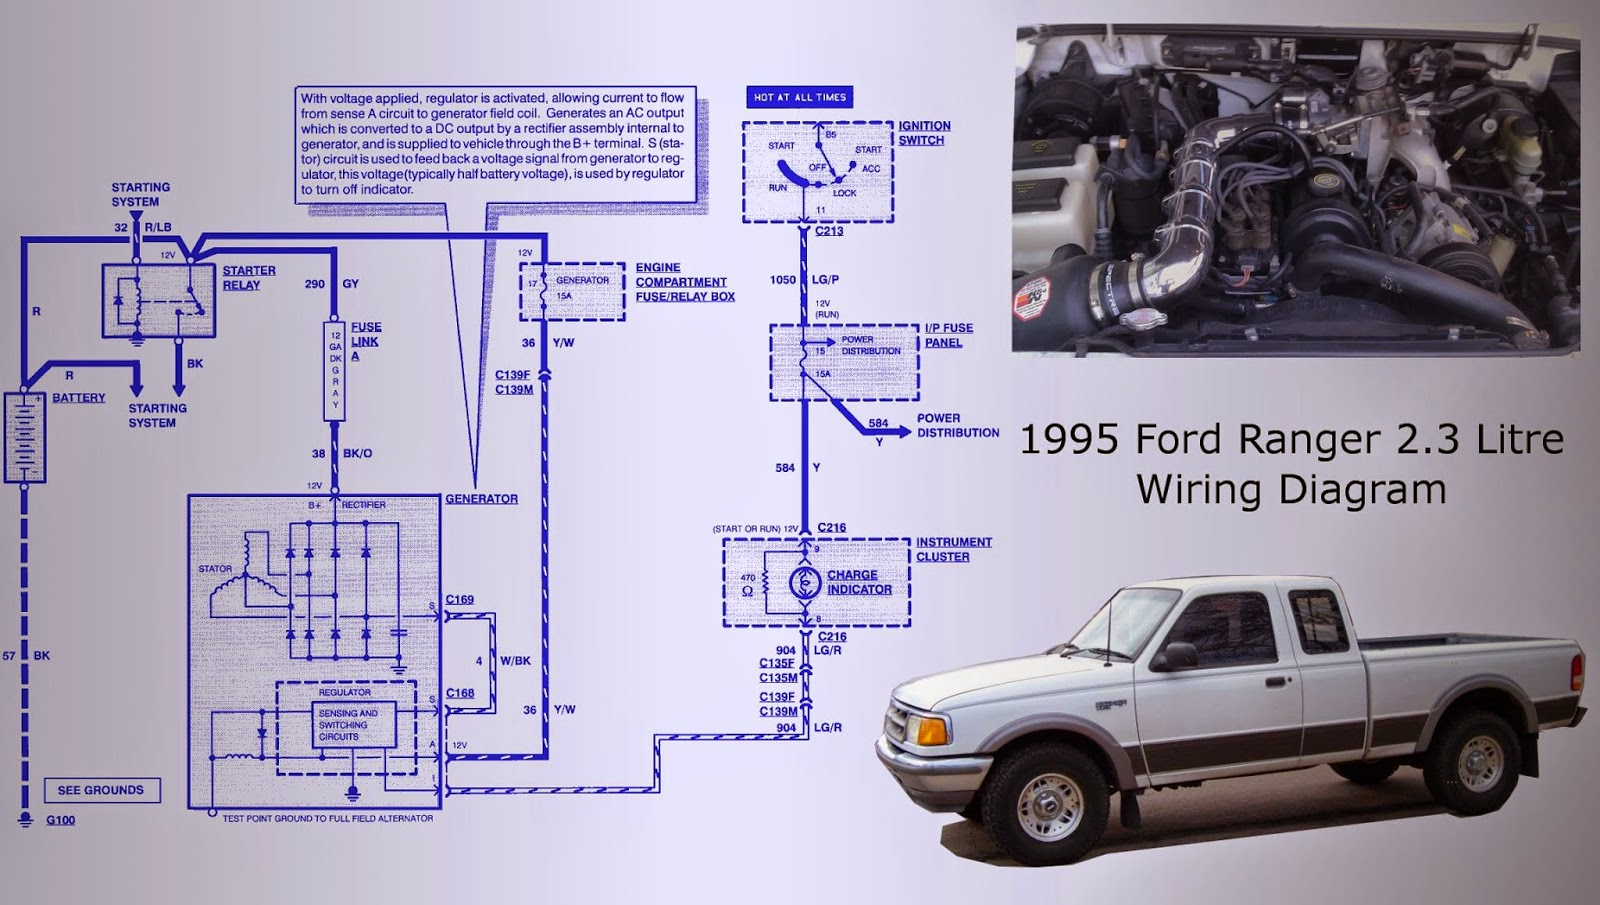 1995 Ford Ranger 23 Litre Wiring Diagram | Auto Wiring Diagrams